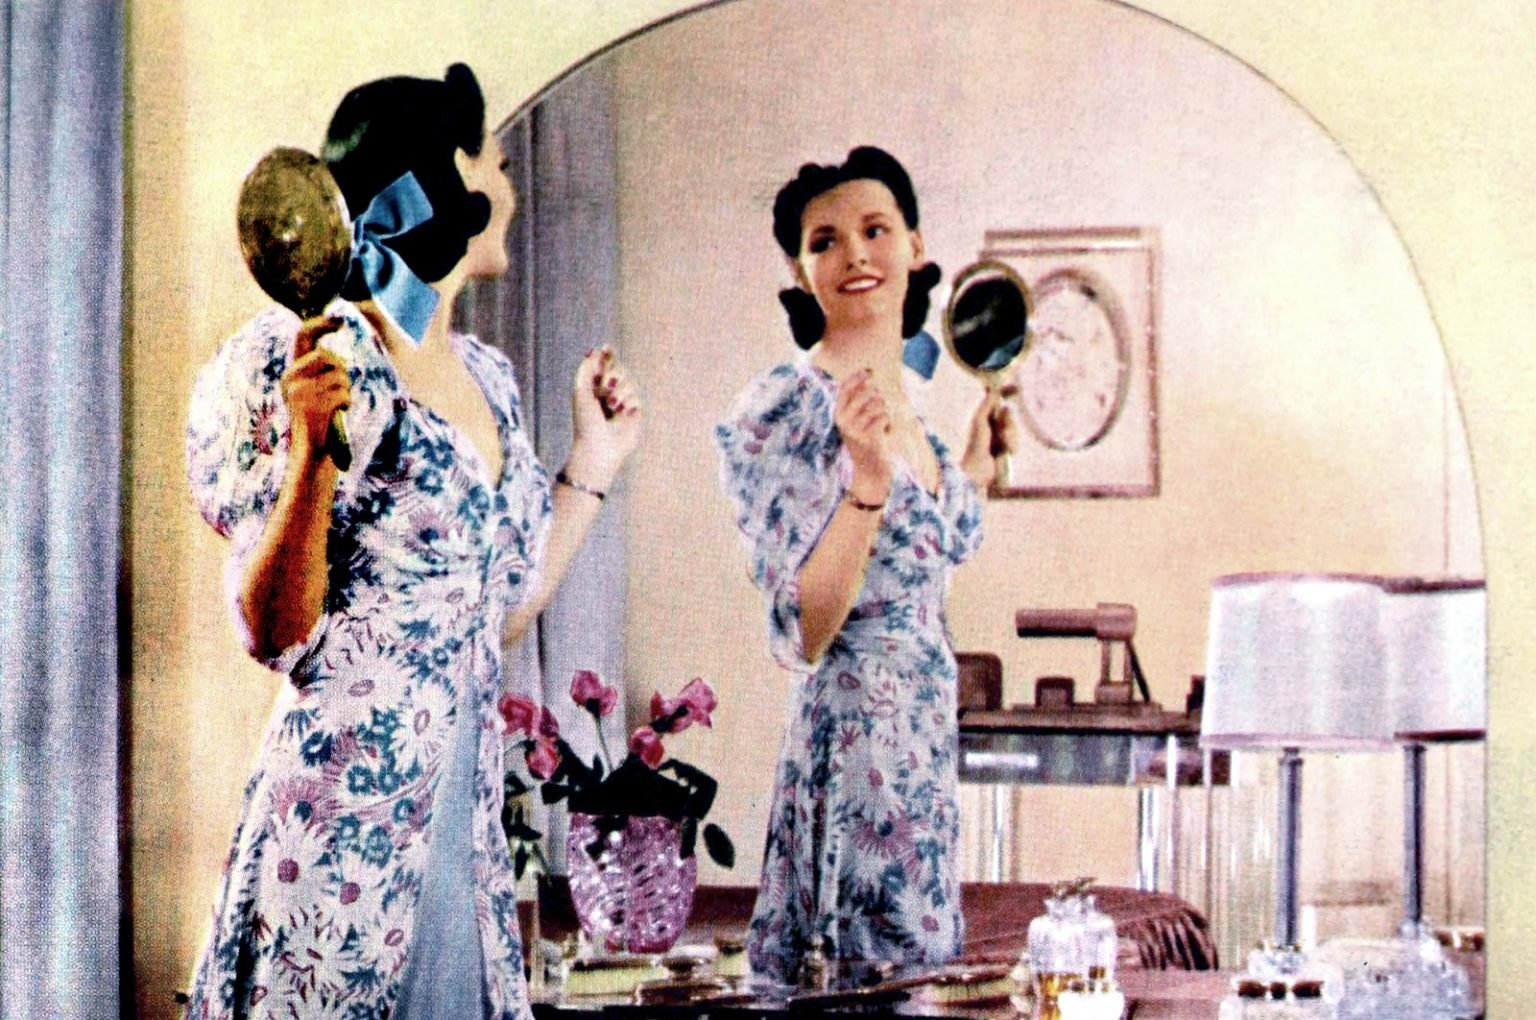 Vintage 30s beauty tips for an ugly duckling (1939)